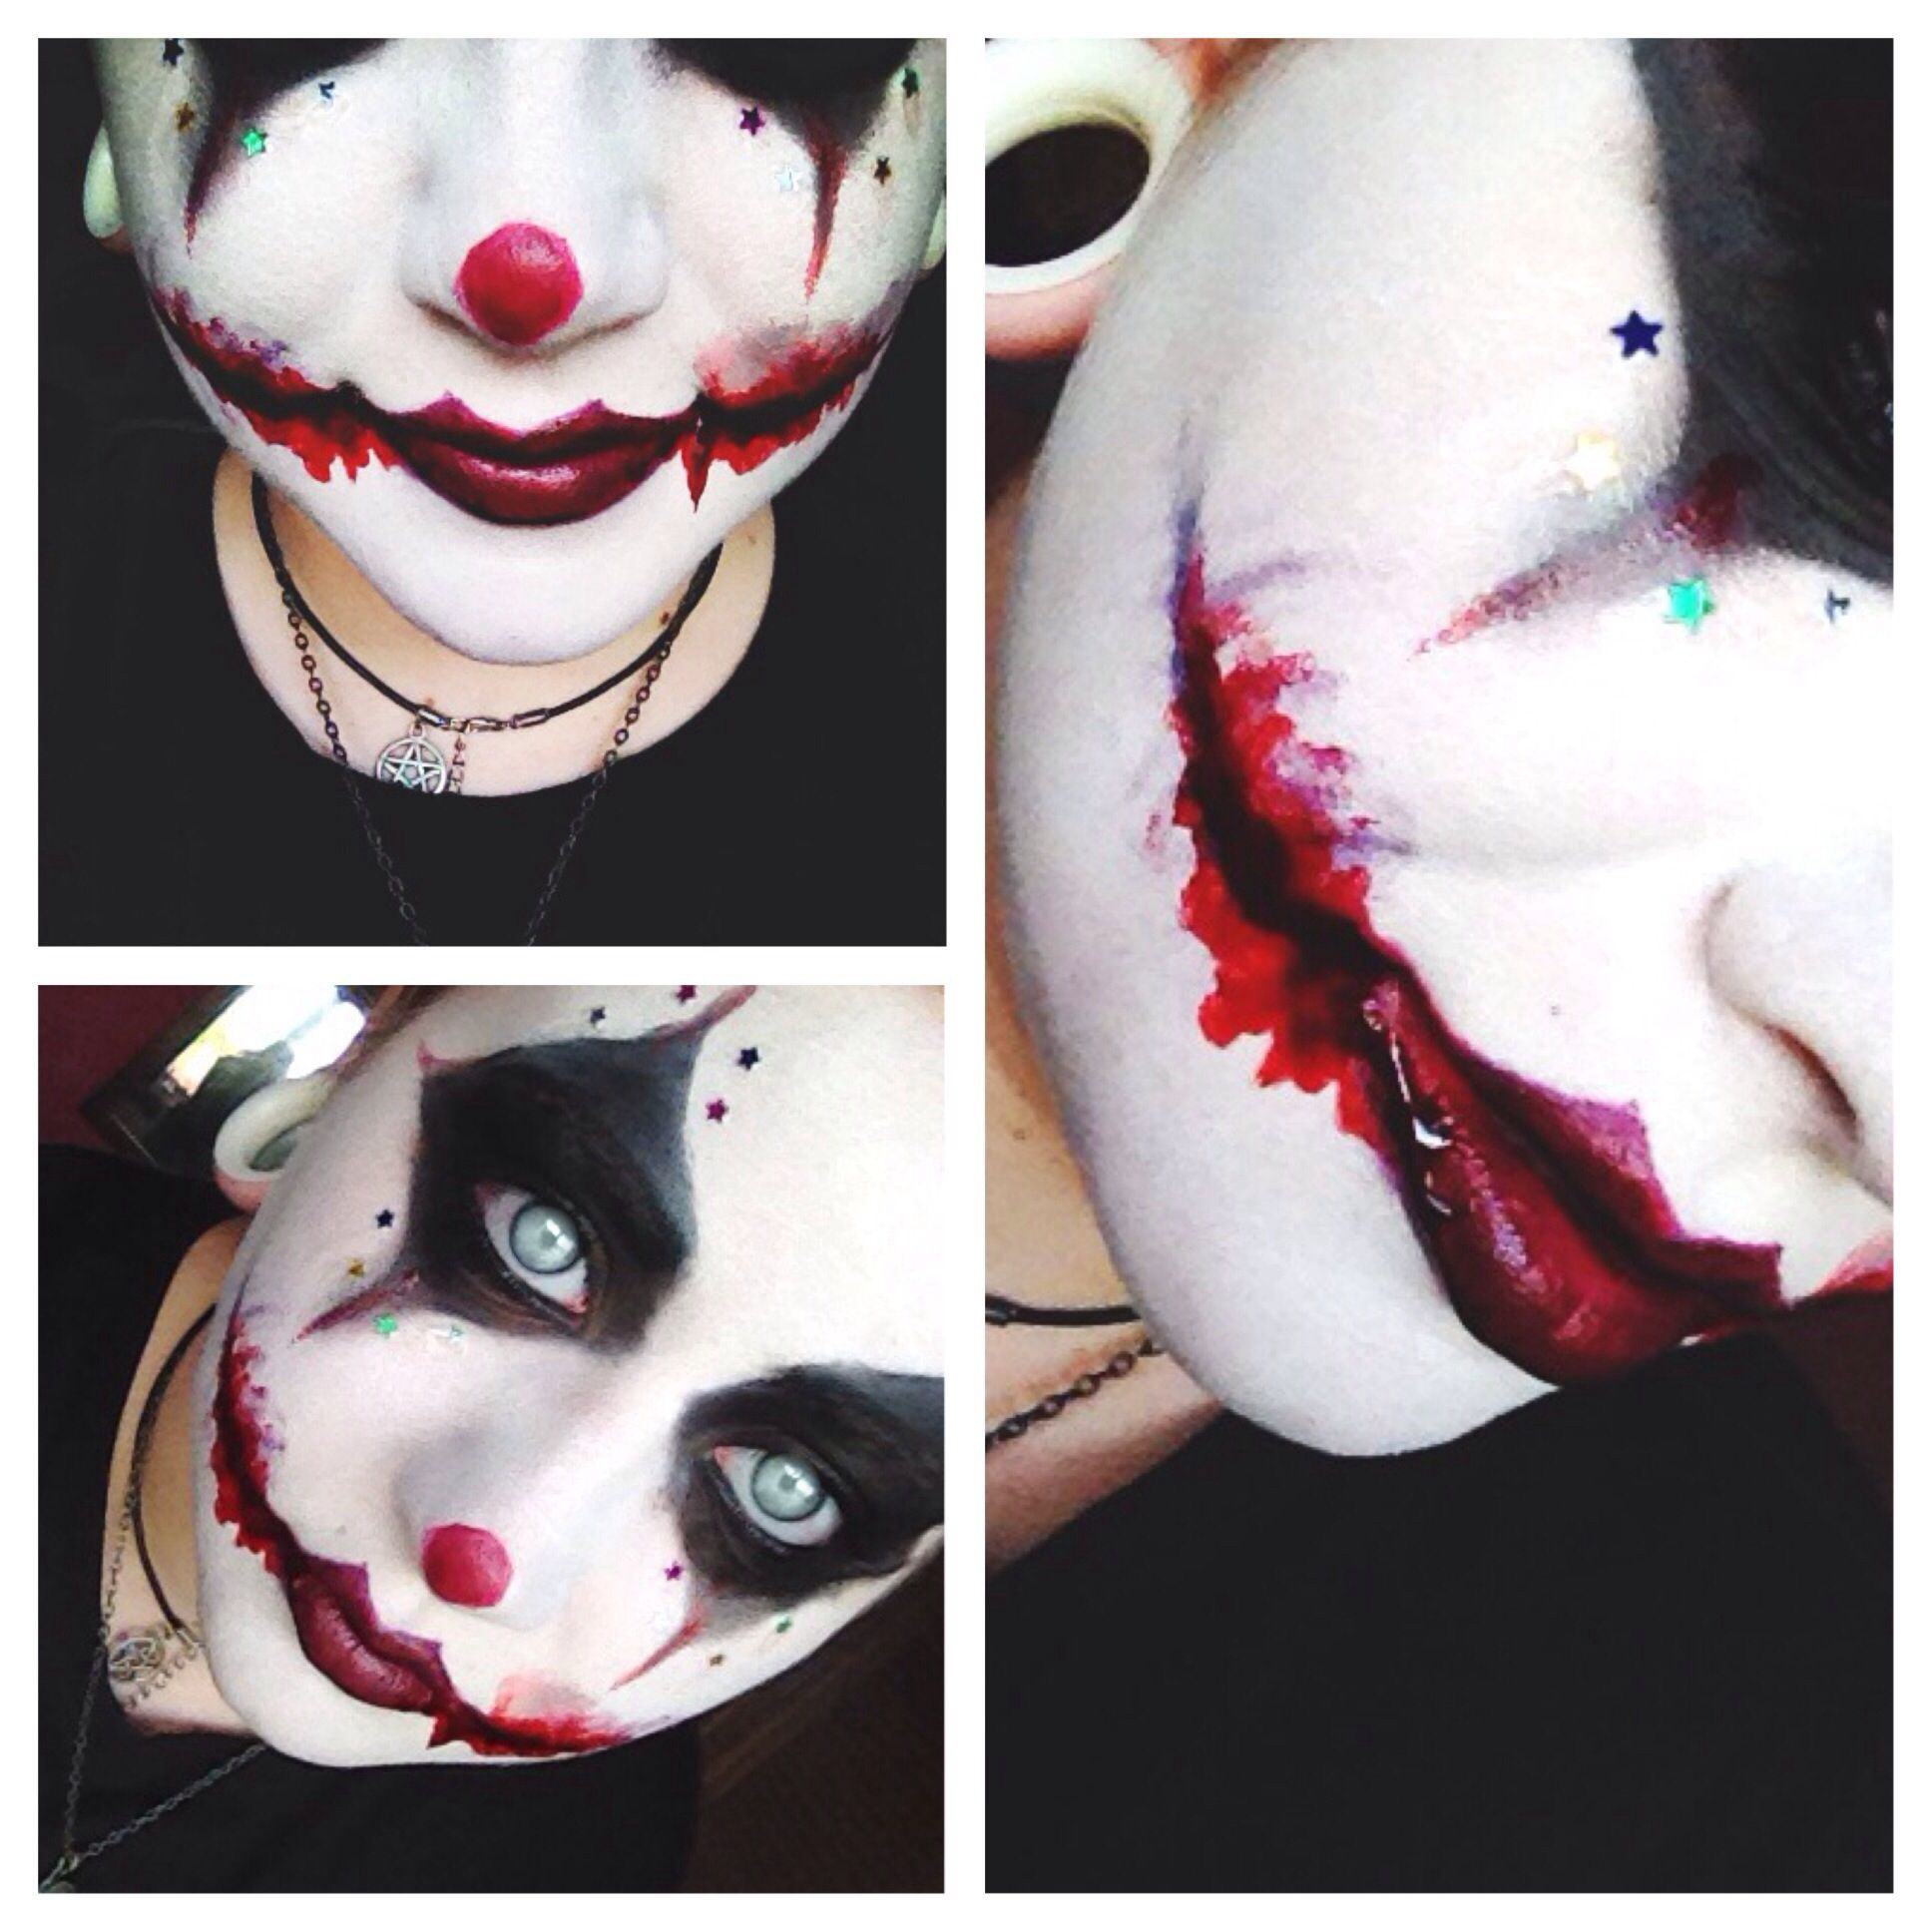 Schmink Ideen Scary Clown Makeup Perfect For Our Family Costumes This